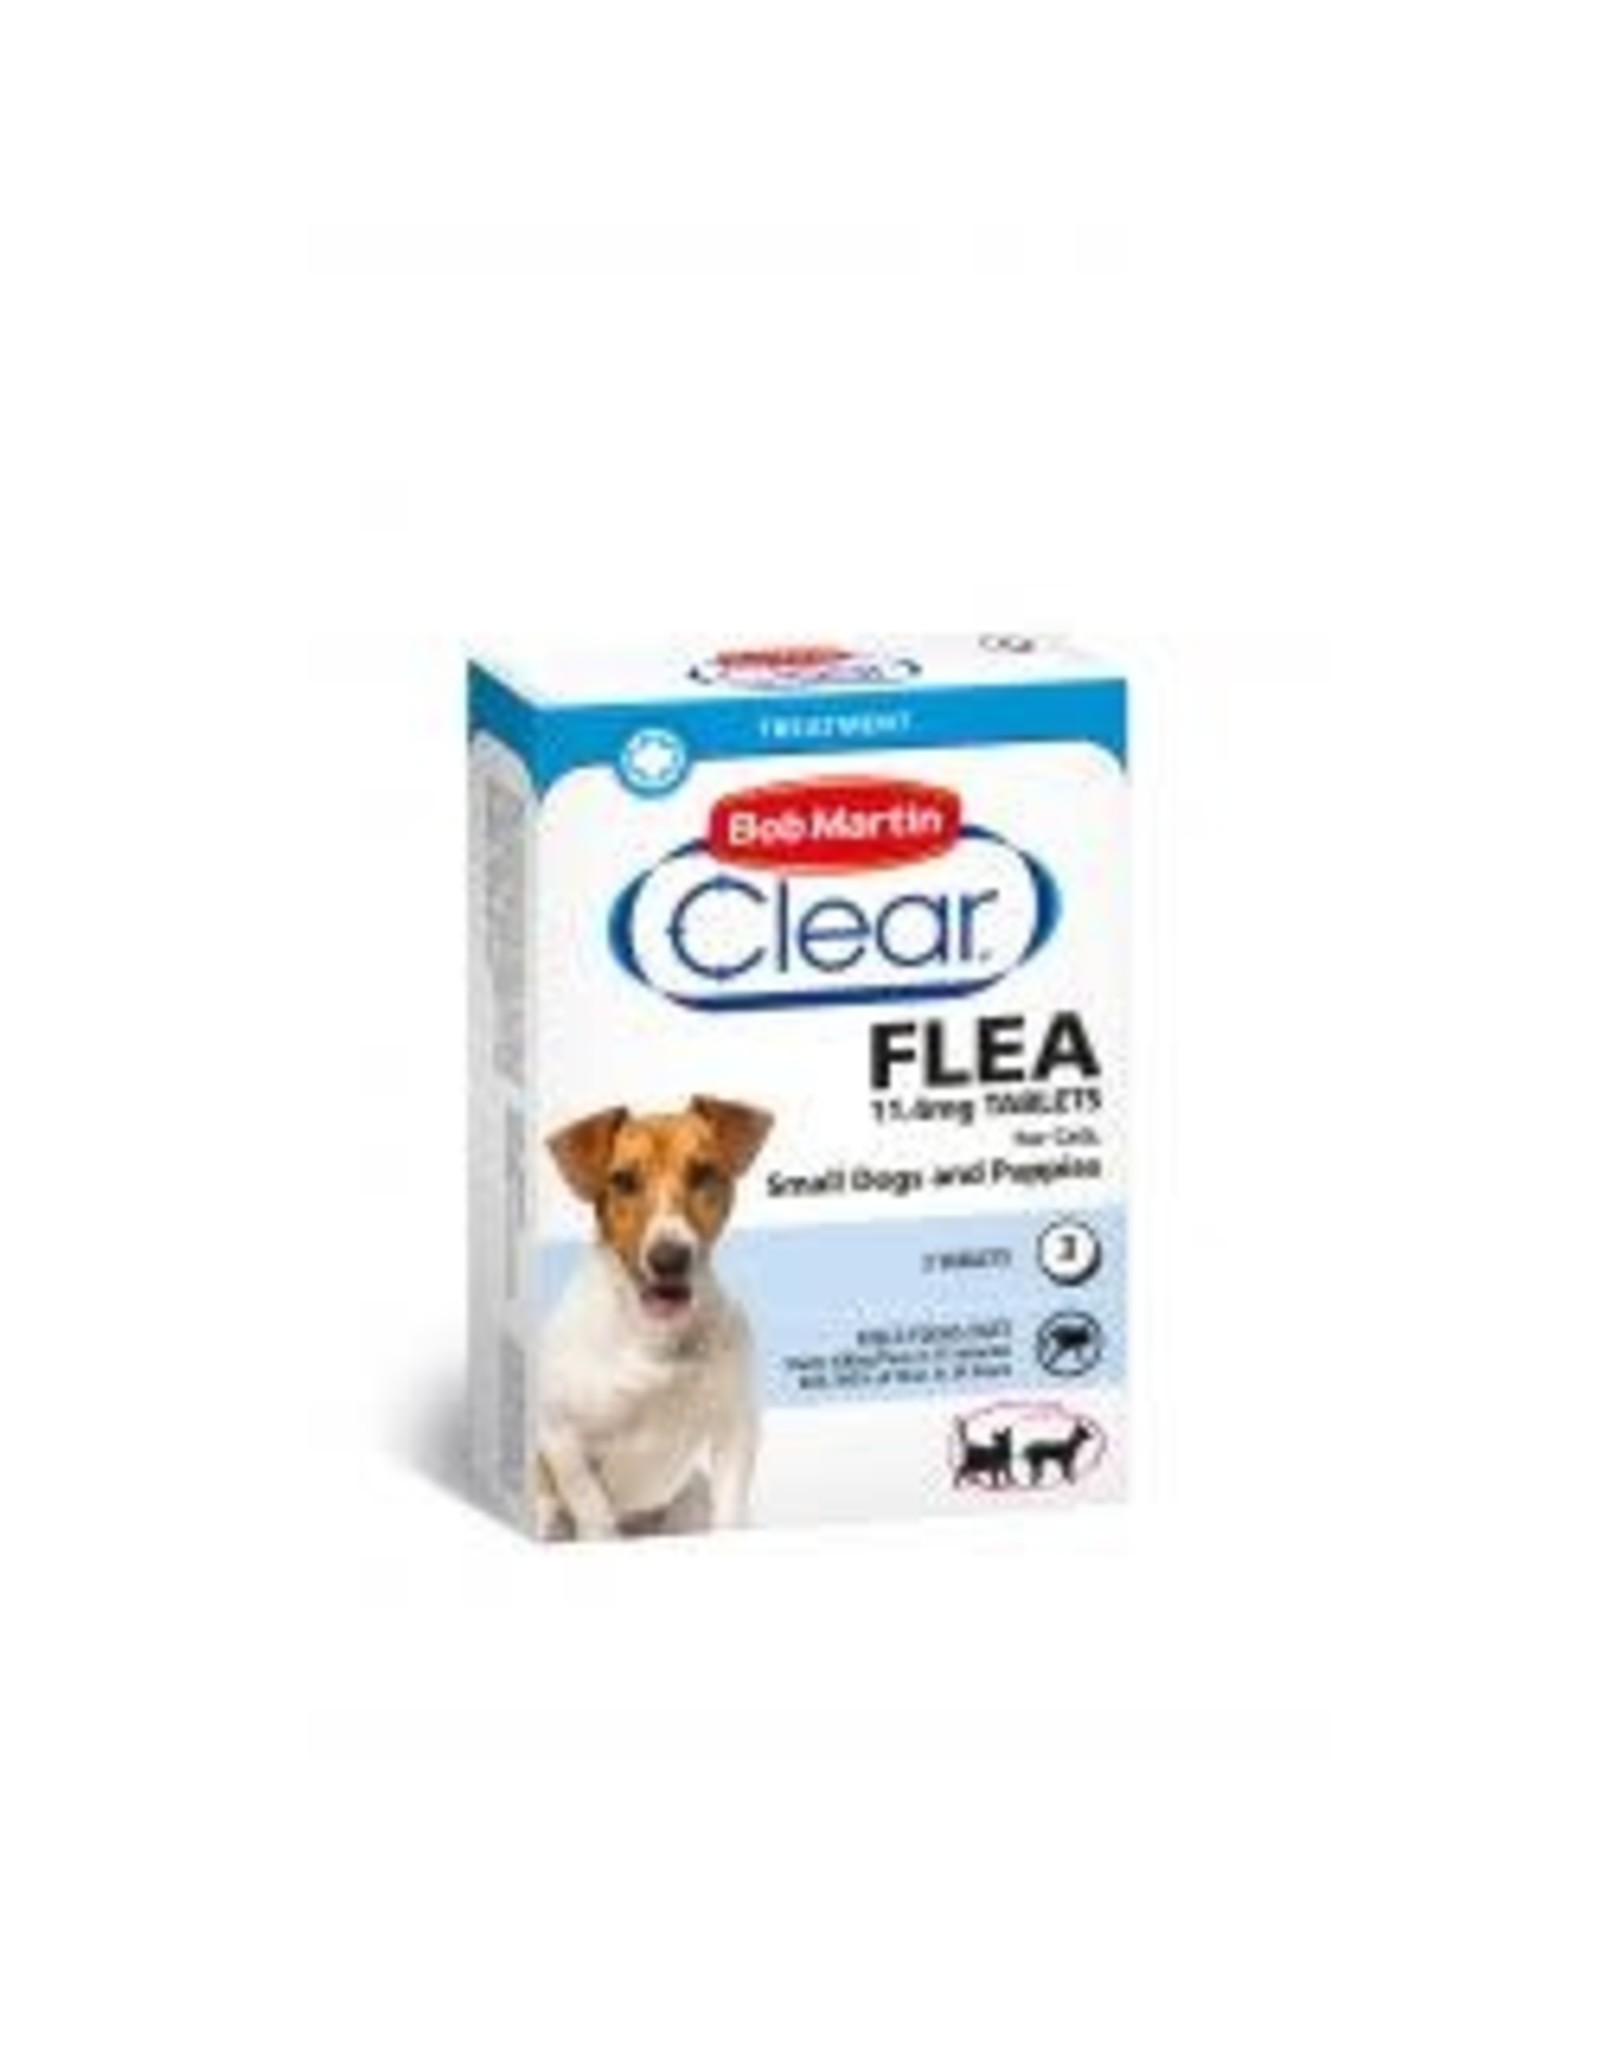 Bob Martin BM Flear Clear Tablets Small Dog and Puppies